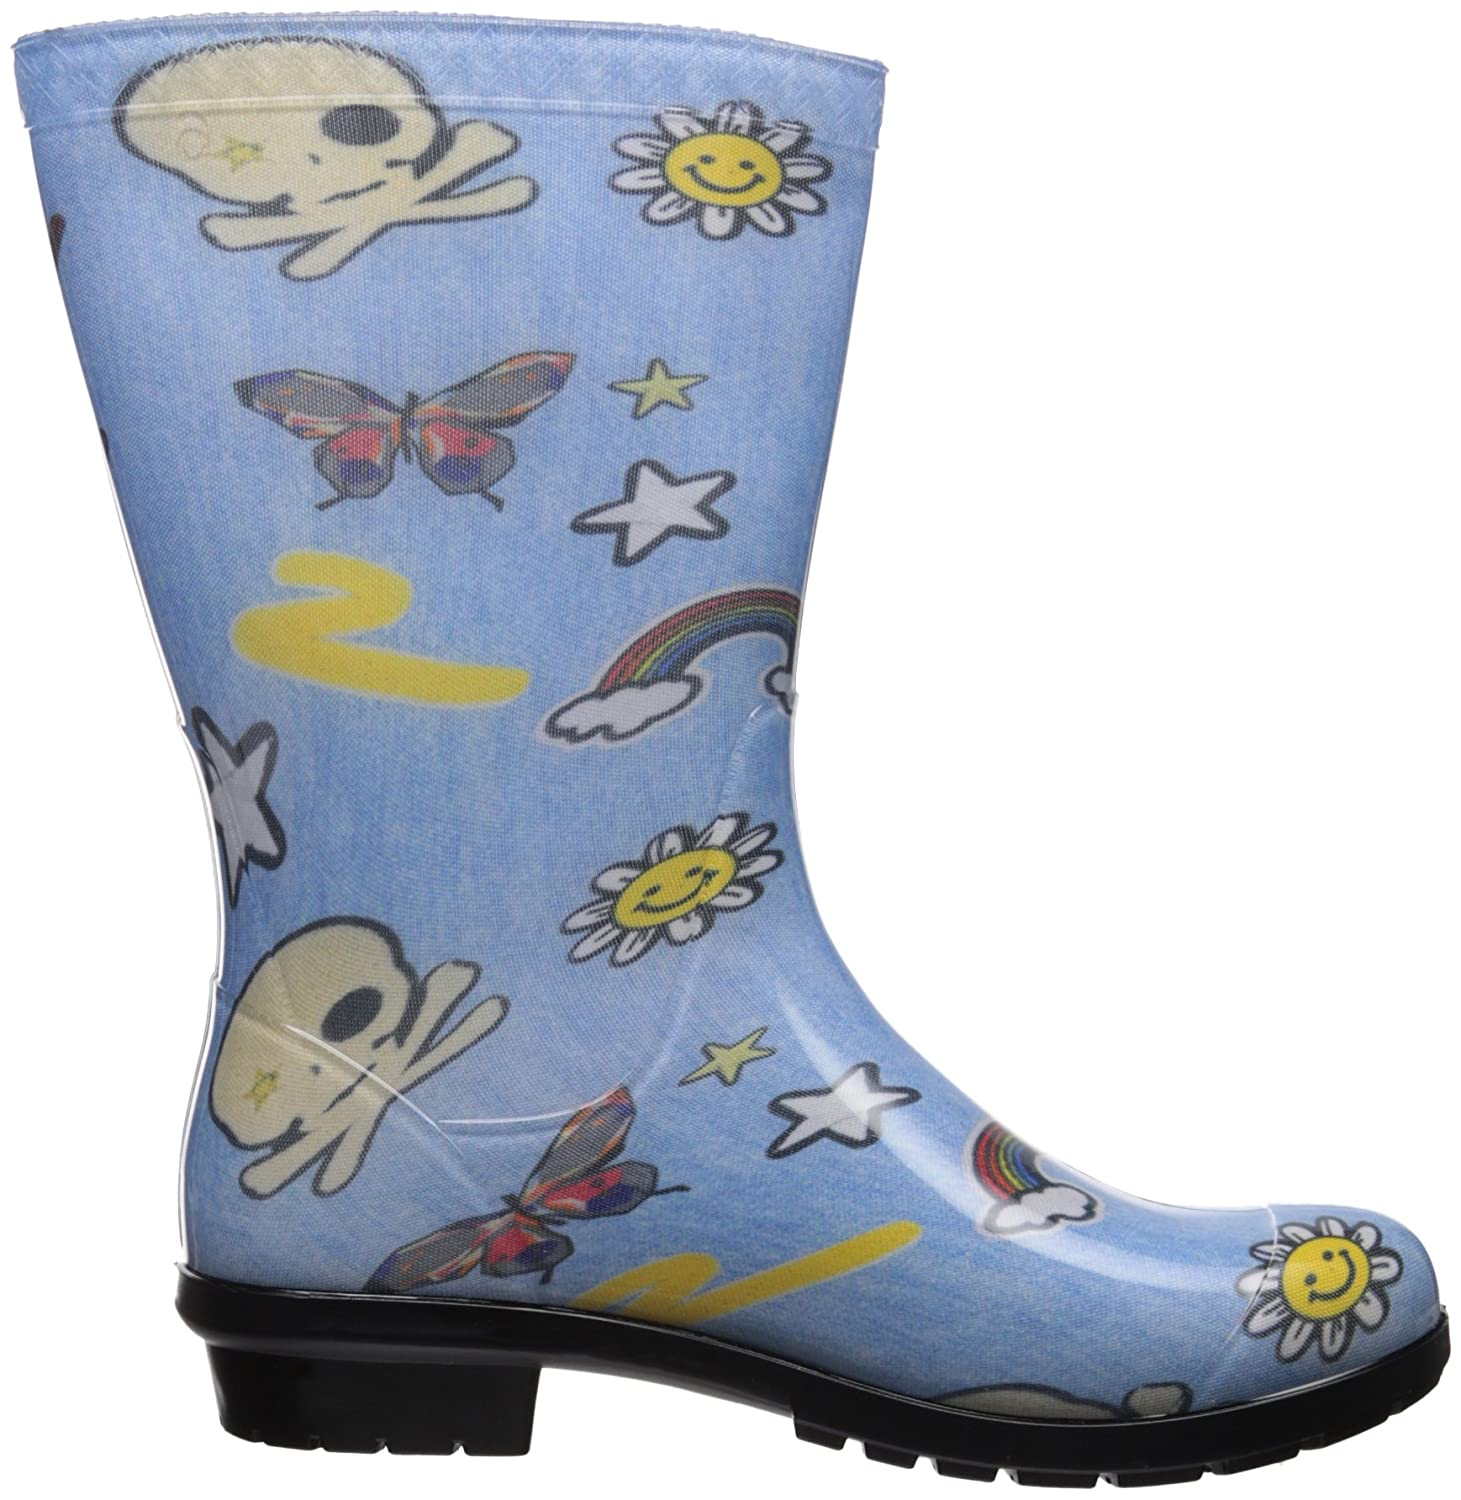 eb4598f8437 UGG Kids K Raana Patches Rain Boot